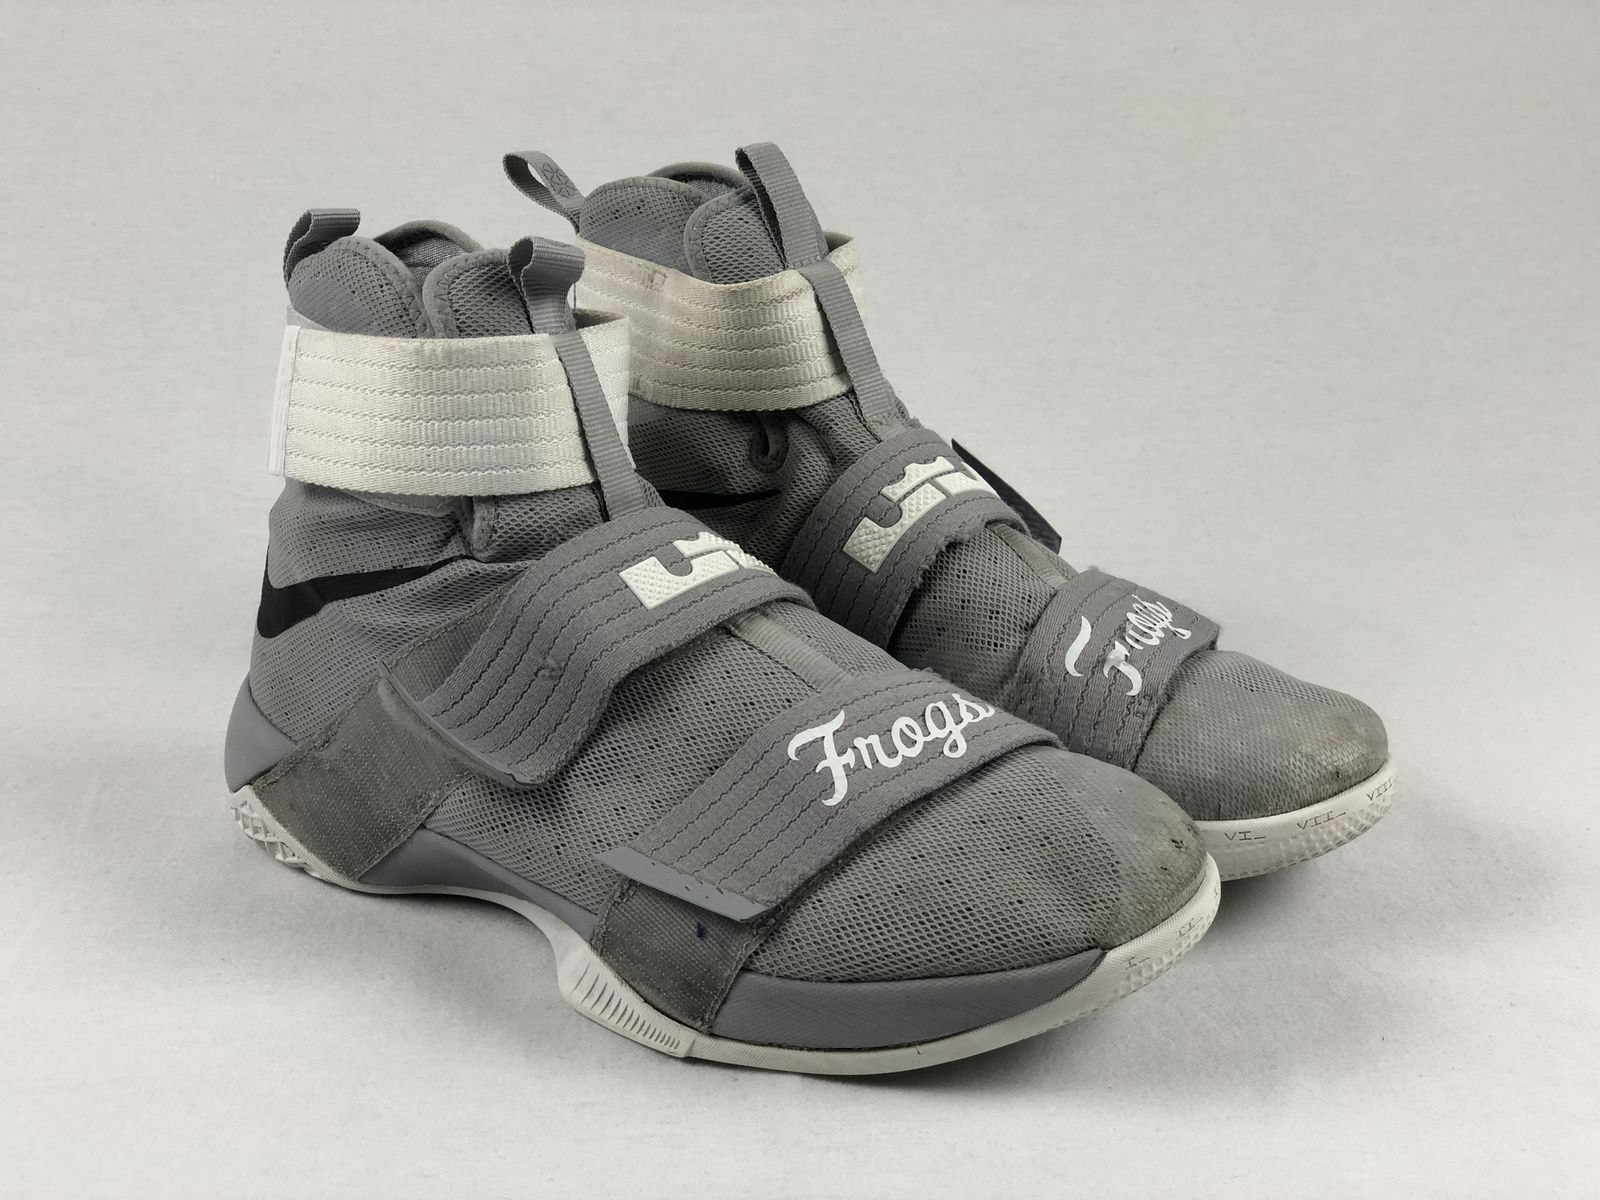 4076f52ec3d Details about Nike Lebron Soldier 10 - Gray Basketball Shoes (Men s 13) -  Used